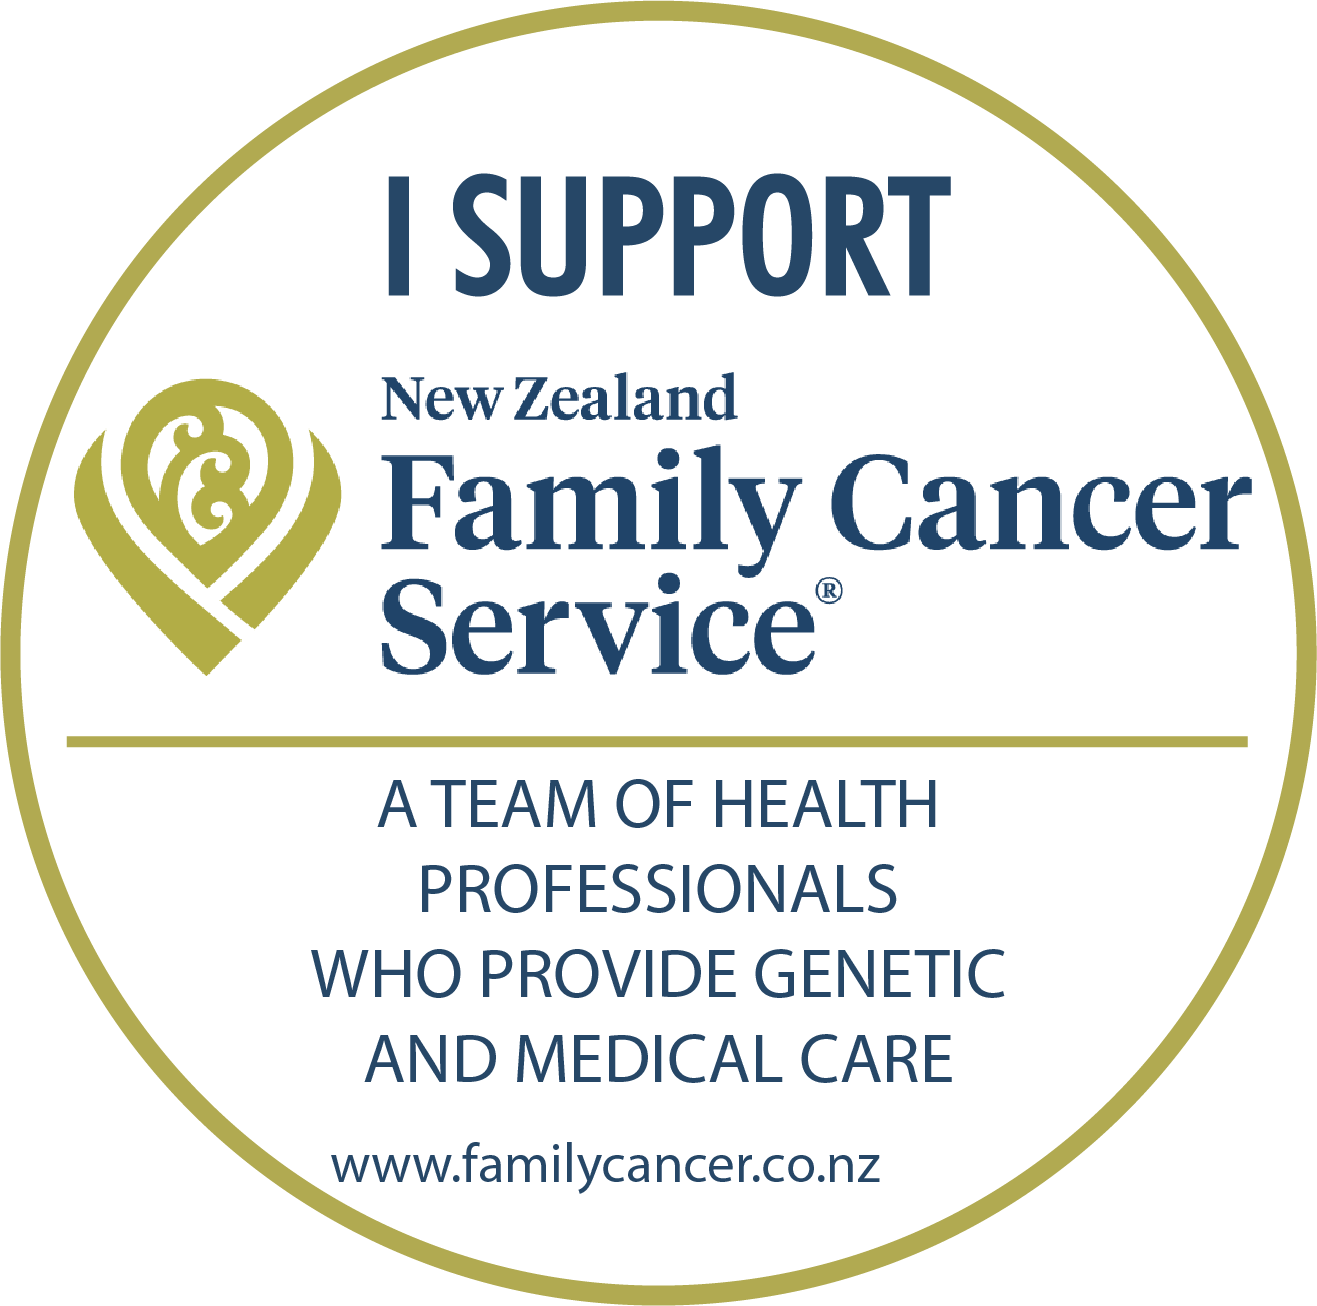 Family Cancer Service